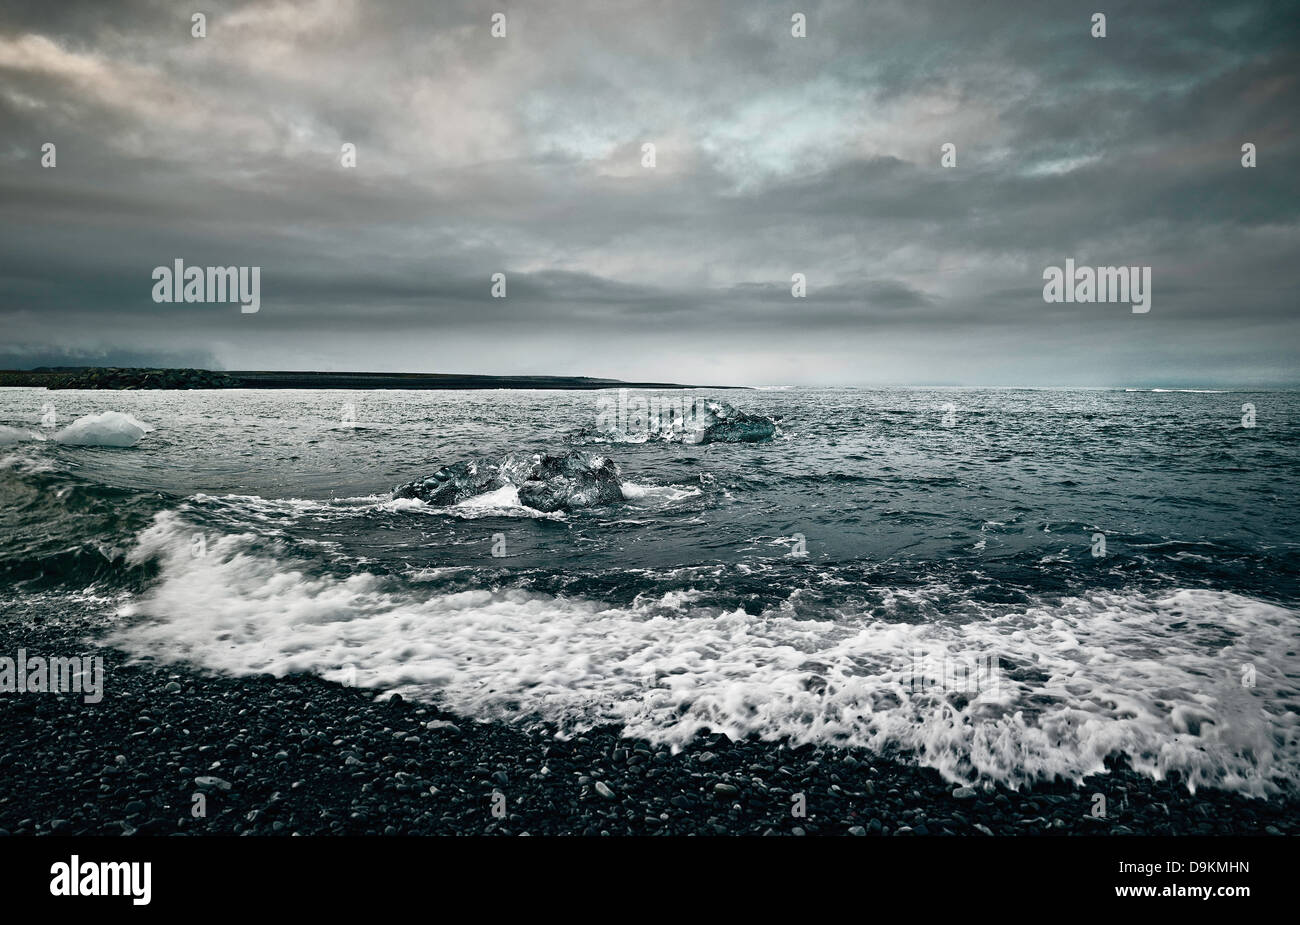 Icy sea on rocky shore - Stock Image